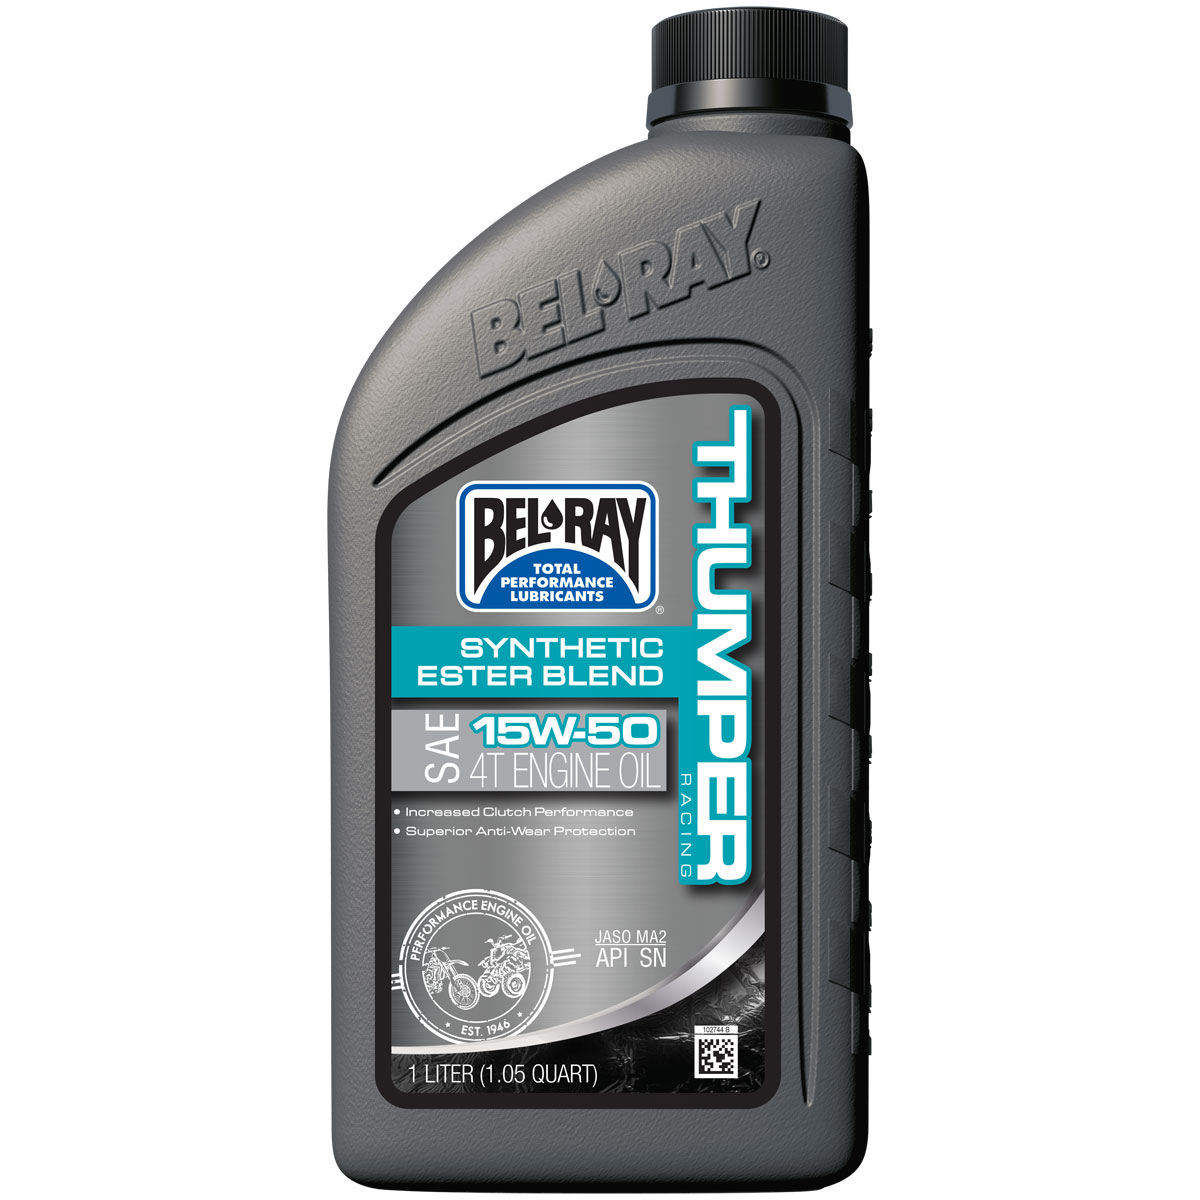 Bel-Ray Thumper Racing Synthetic Ester Blend 4T 15W50 Engine Oil 1 Liter